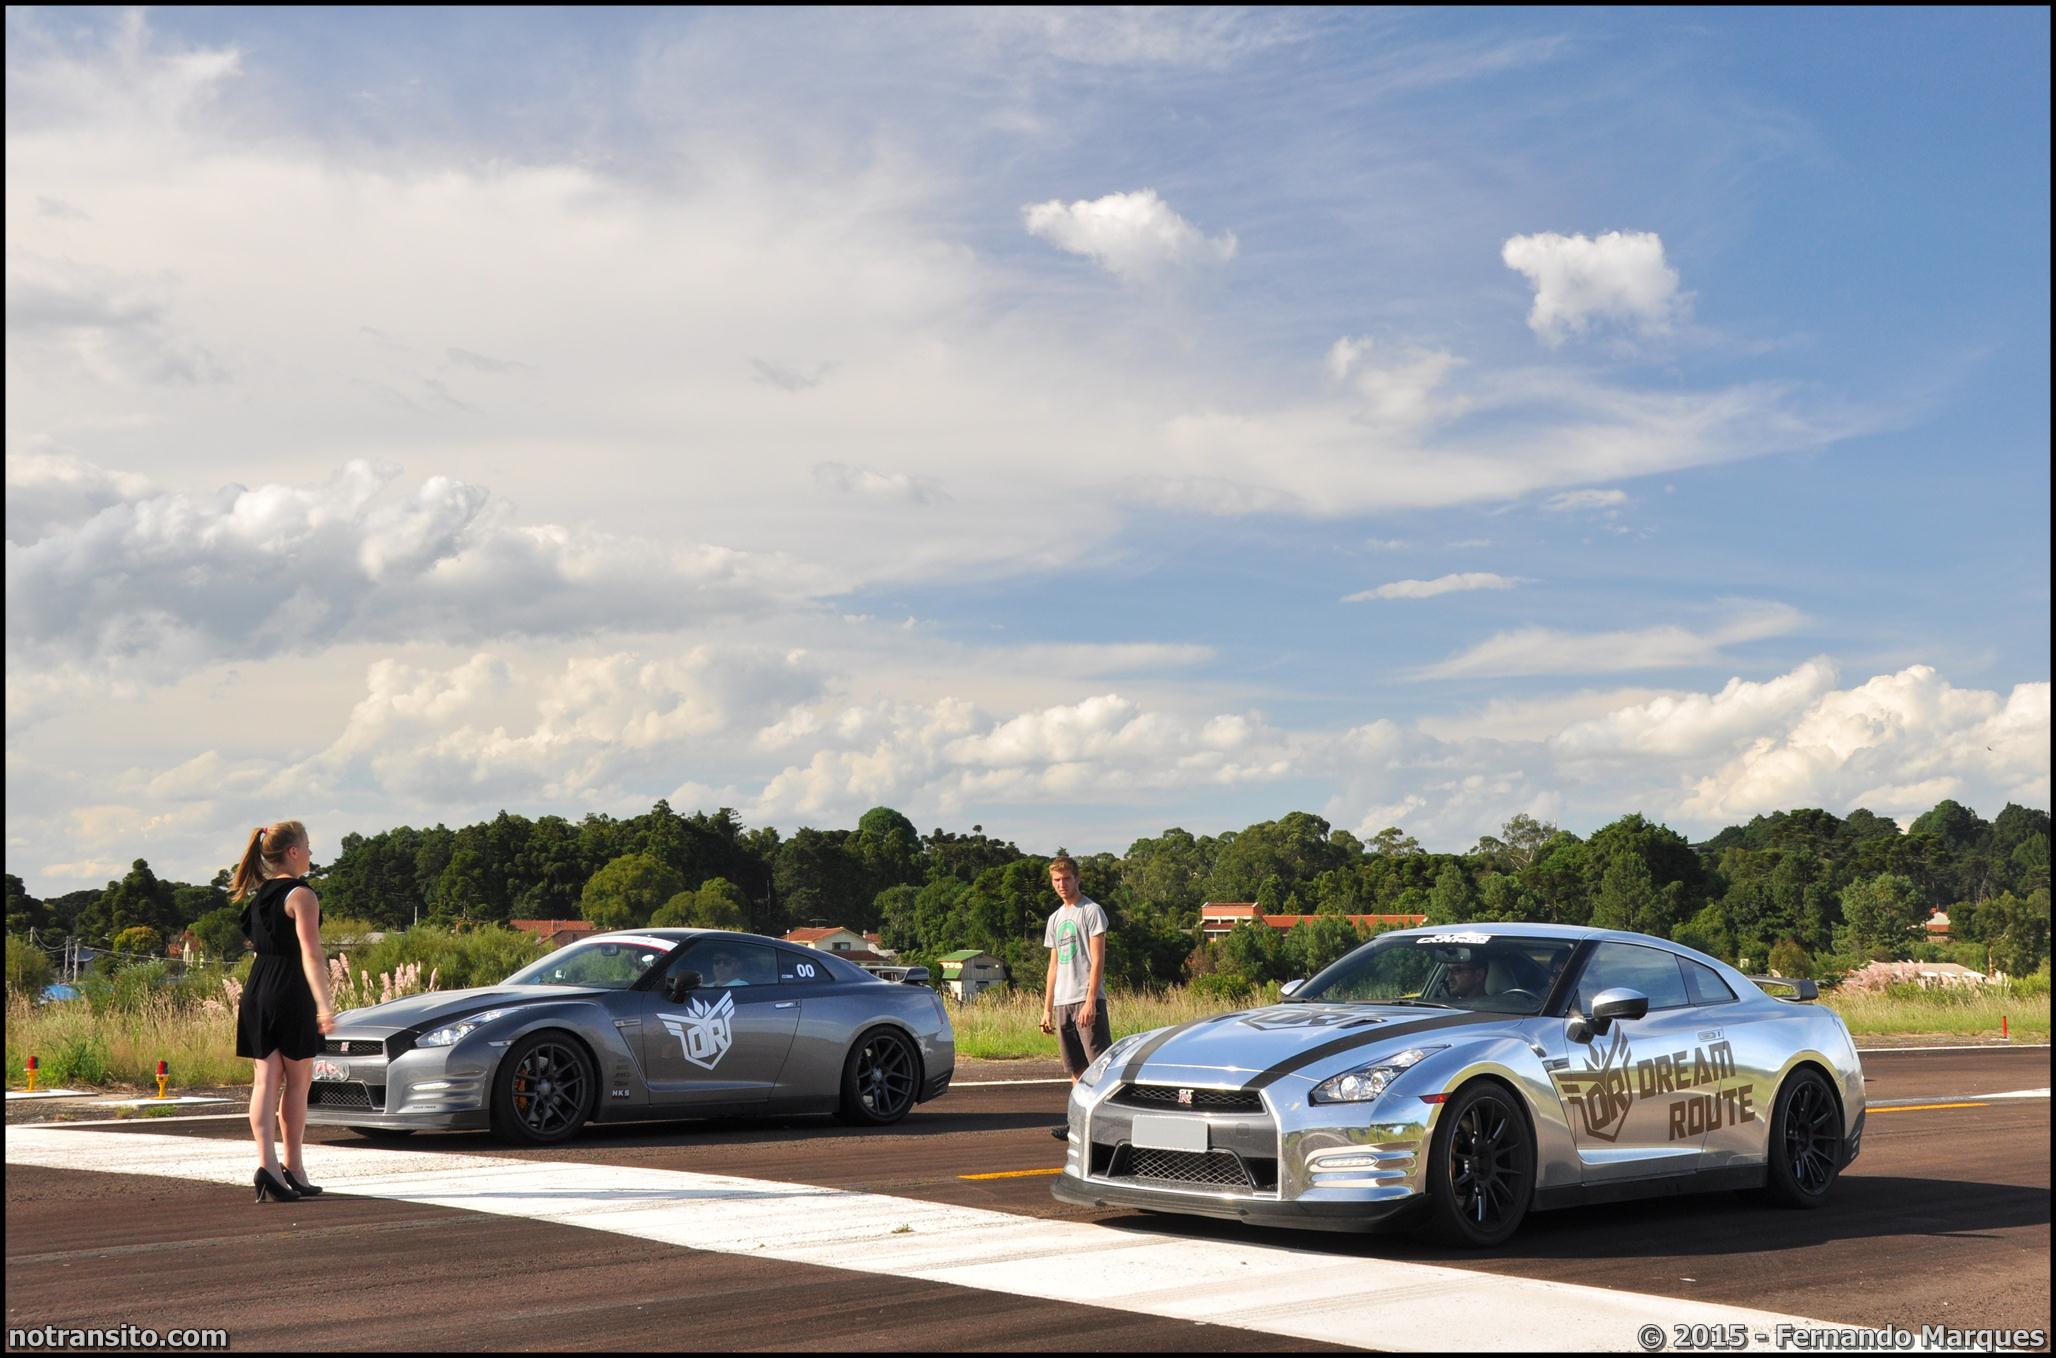 Dream Route, NIssan GT-R combo drag race